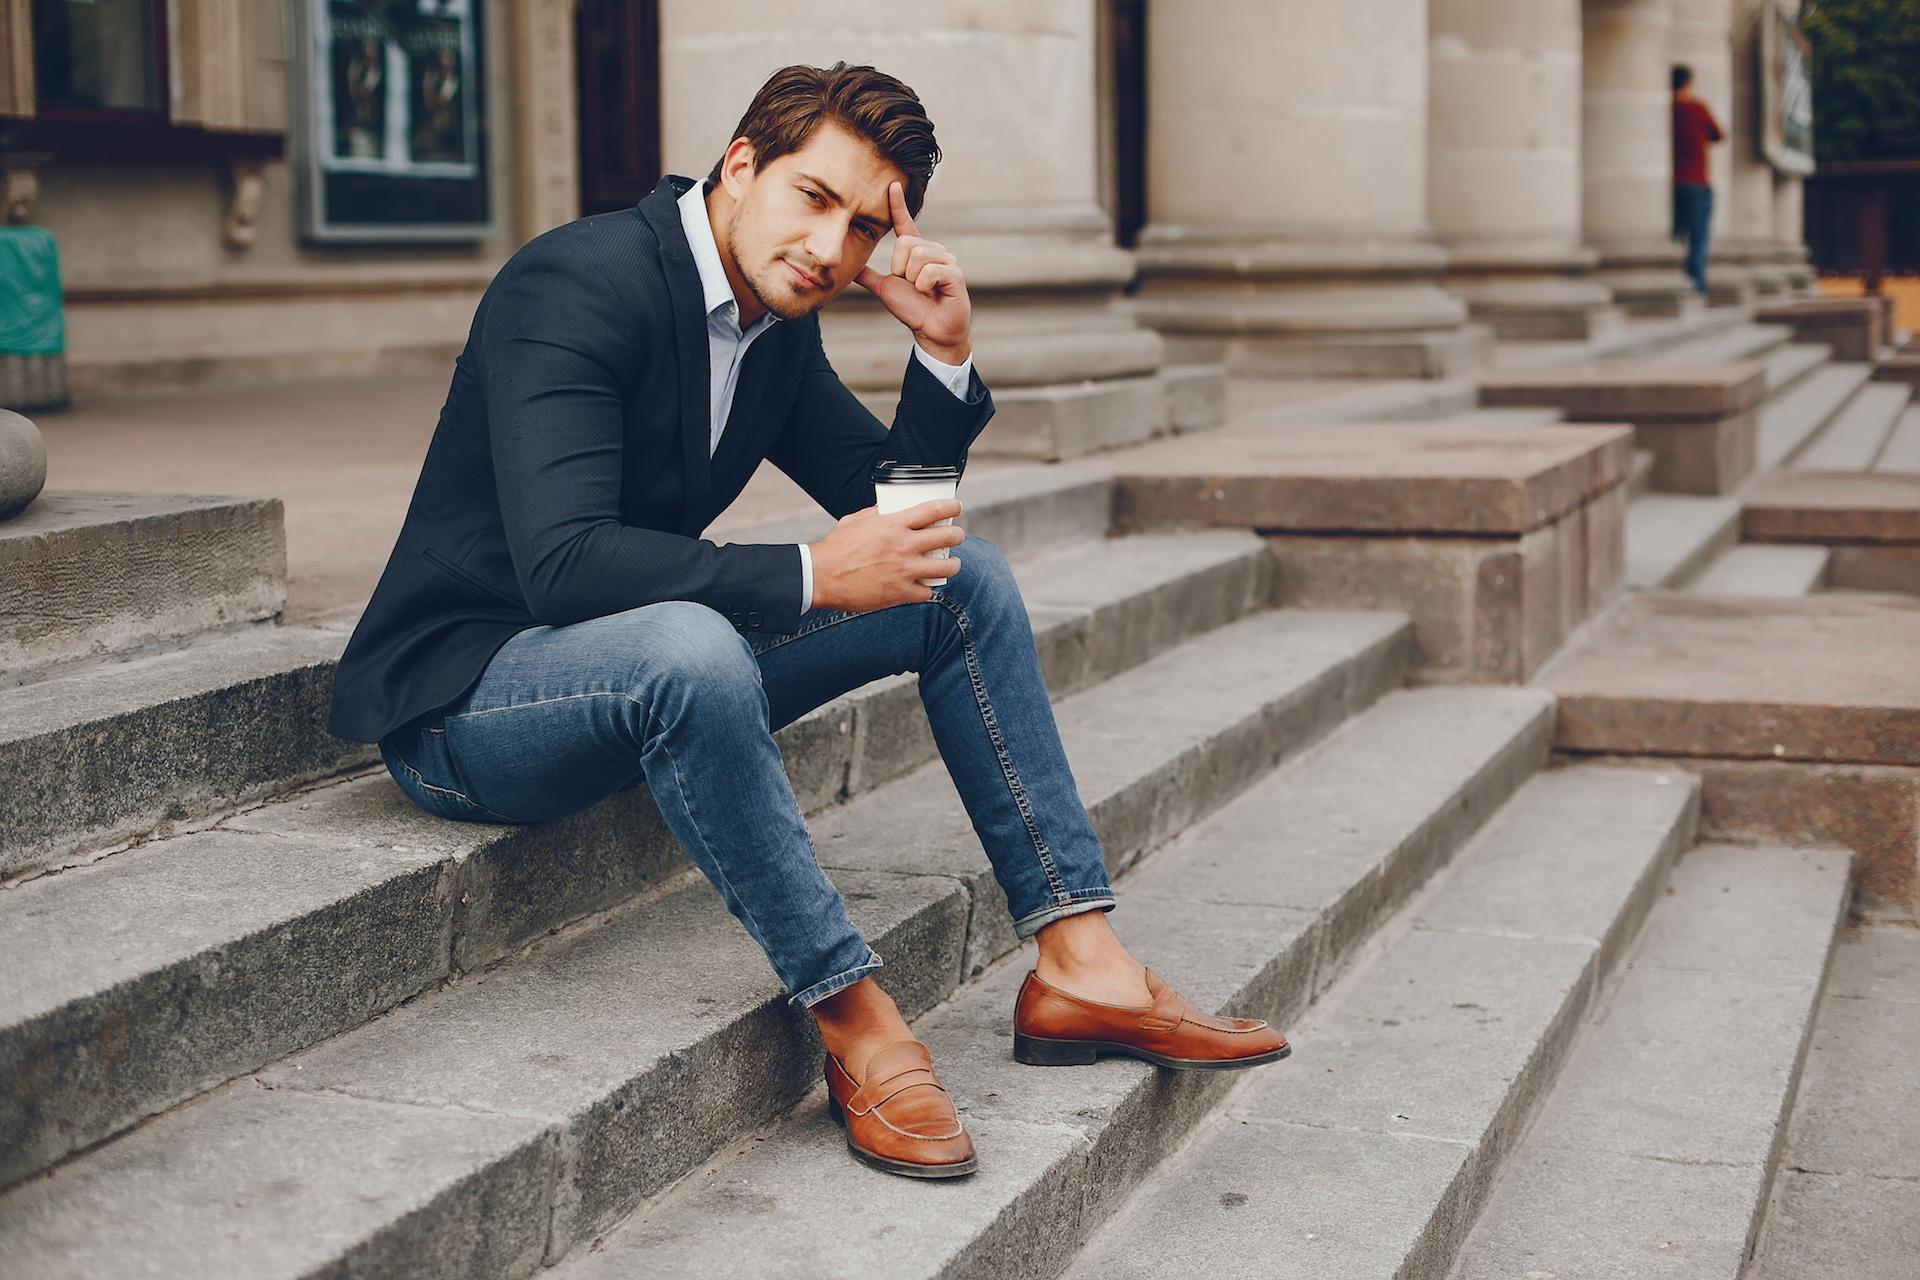 Stylish man in leather loafers and a sports coat drinking coffee on some cement steps